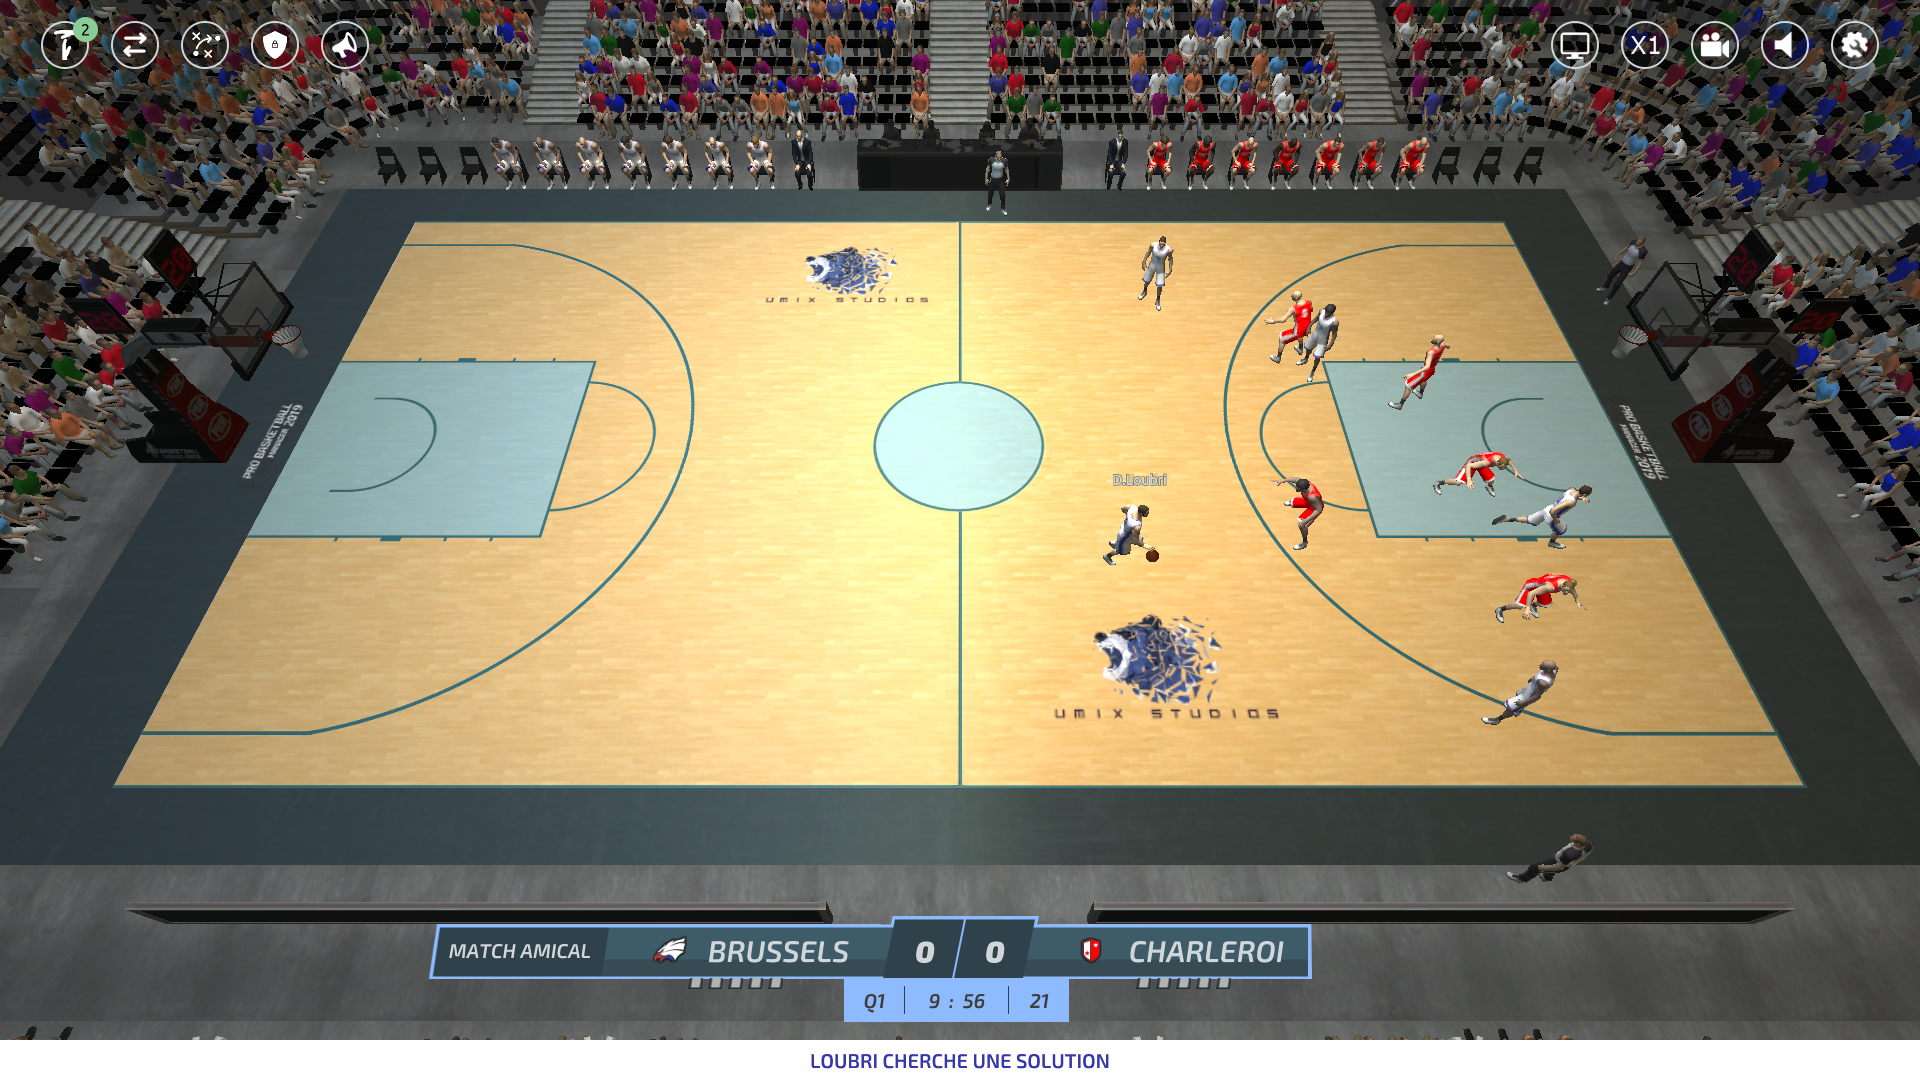 Pro Basketball Manager 2019 - 3D